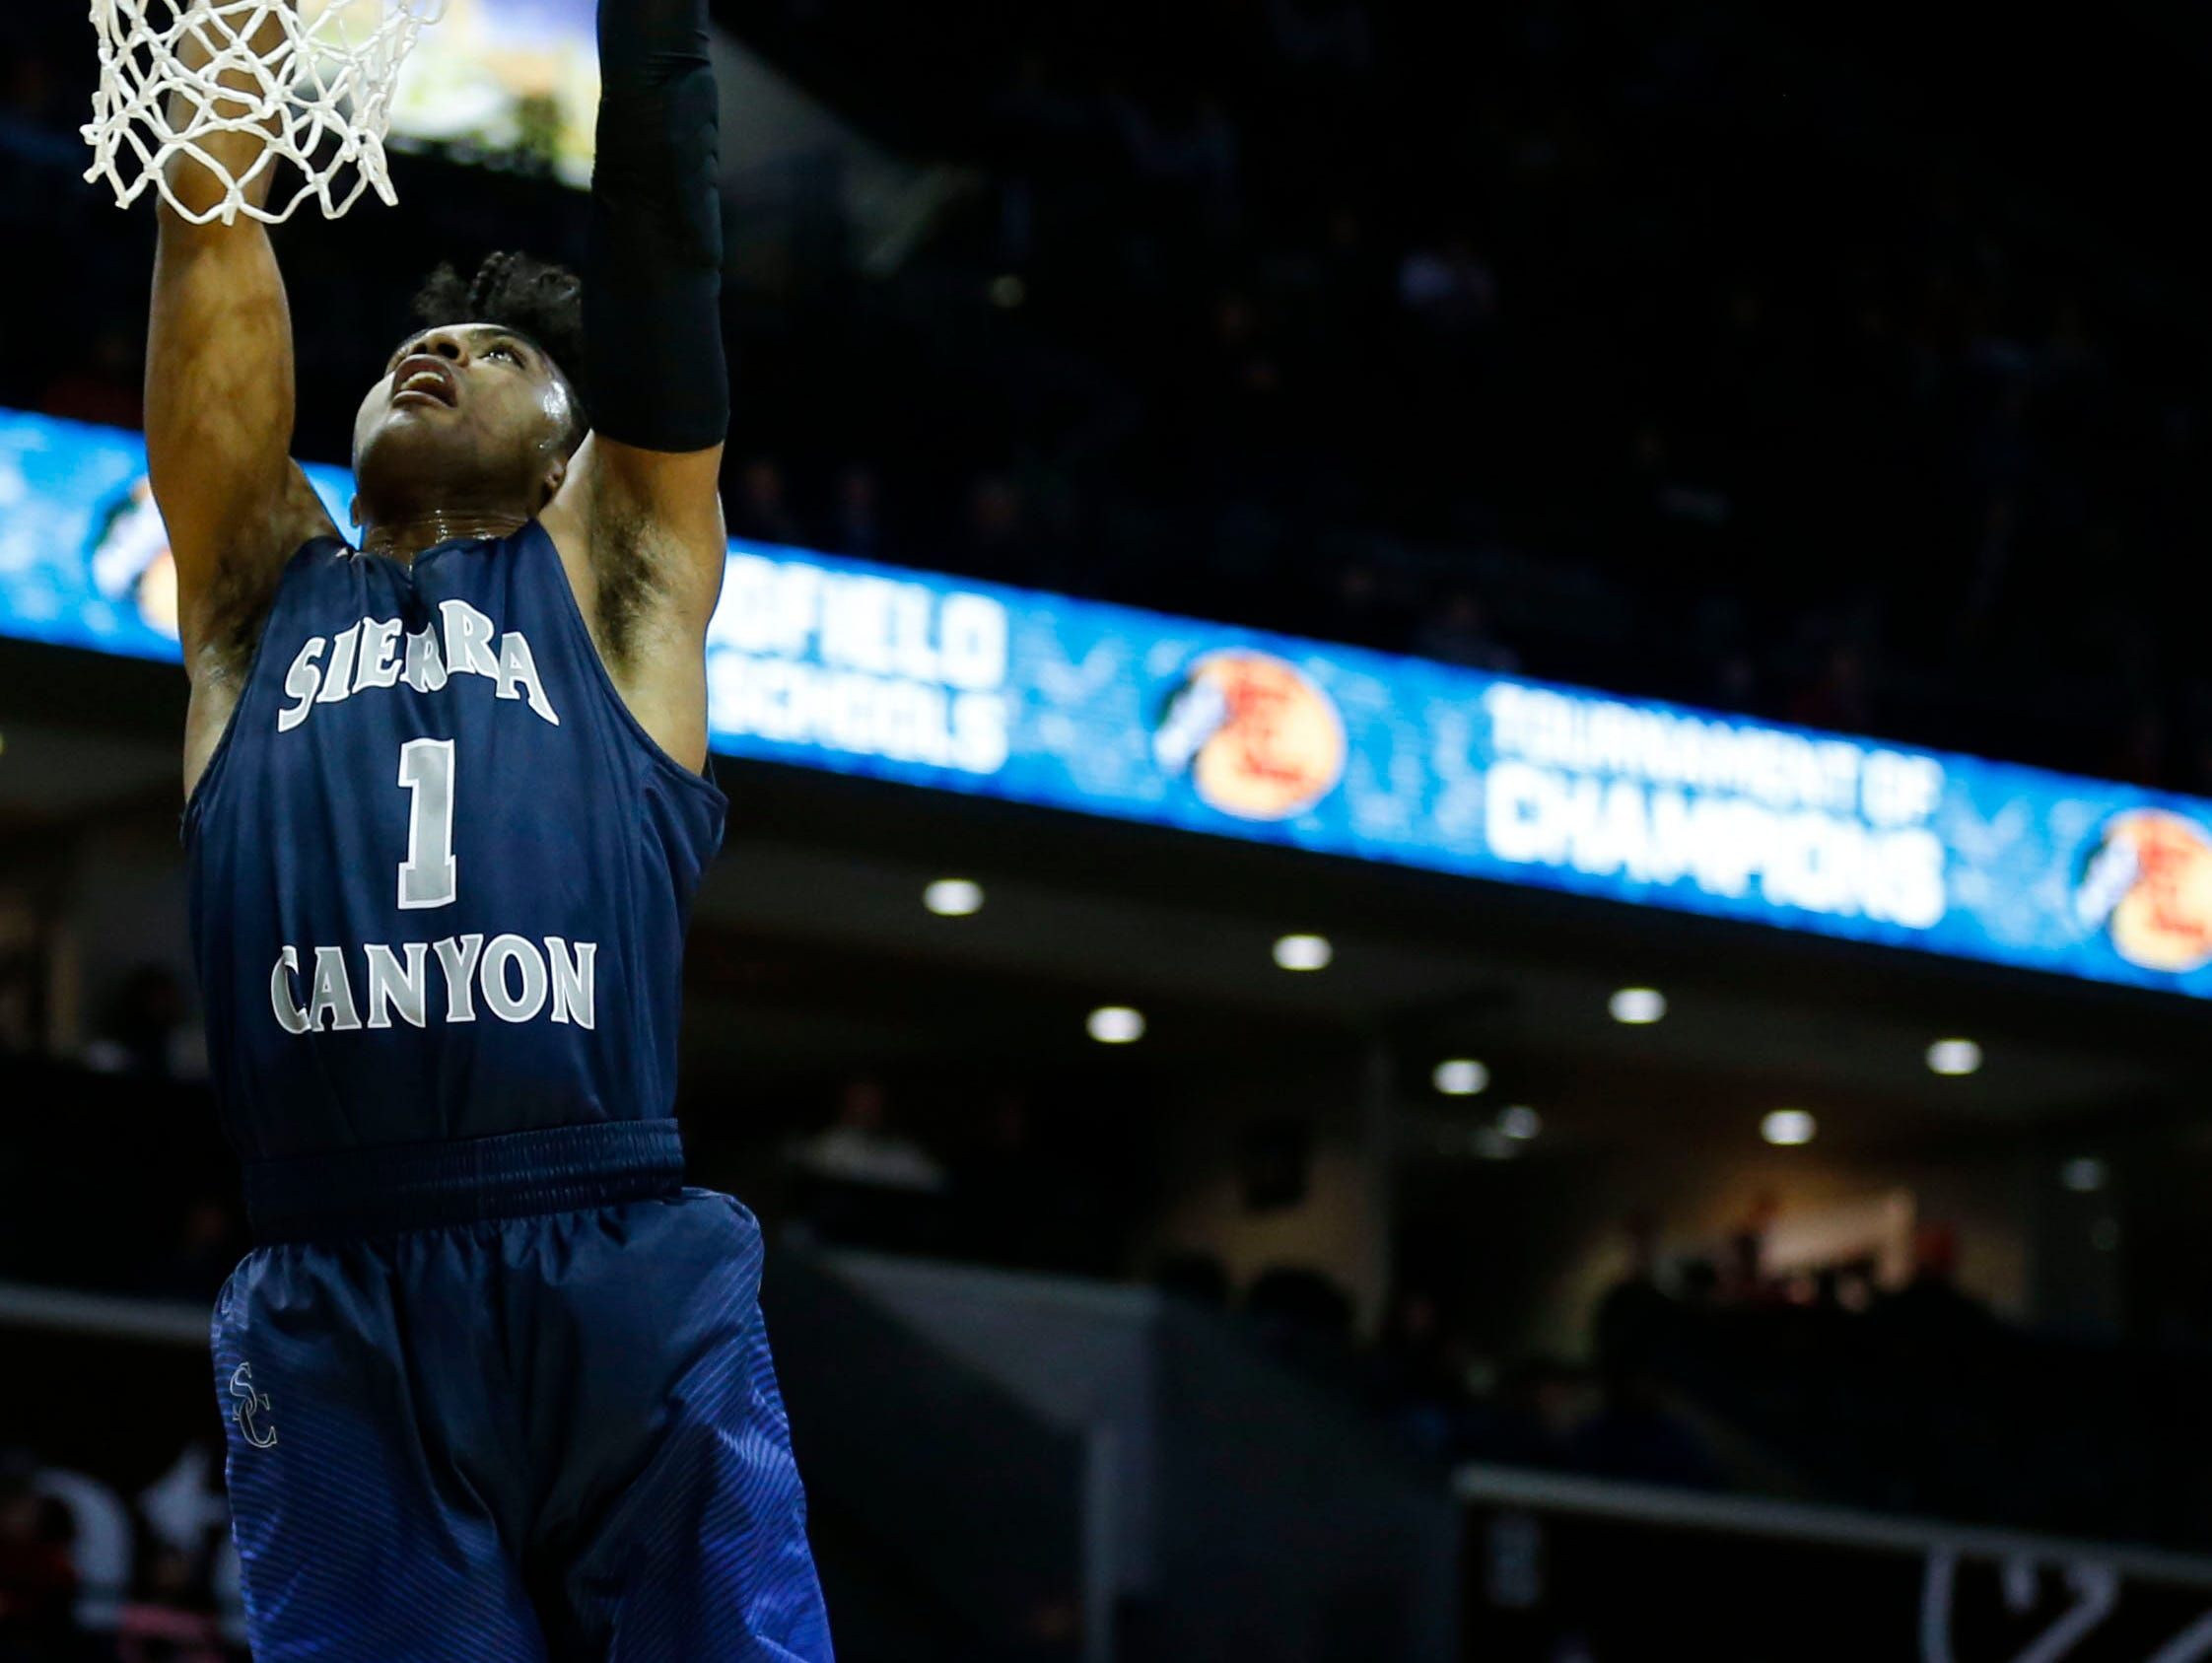 Sierra Canyons Remy Martin dunks the ball as Republics Broc Smith looks on during the first round of the Tournament of Champions at JQH Arena on Thursday, Jan. 12, 2017.